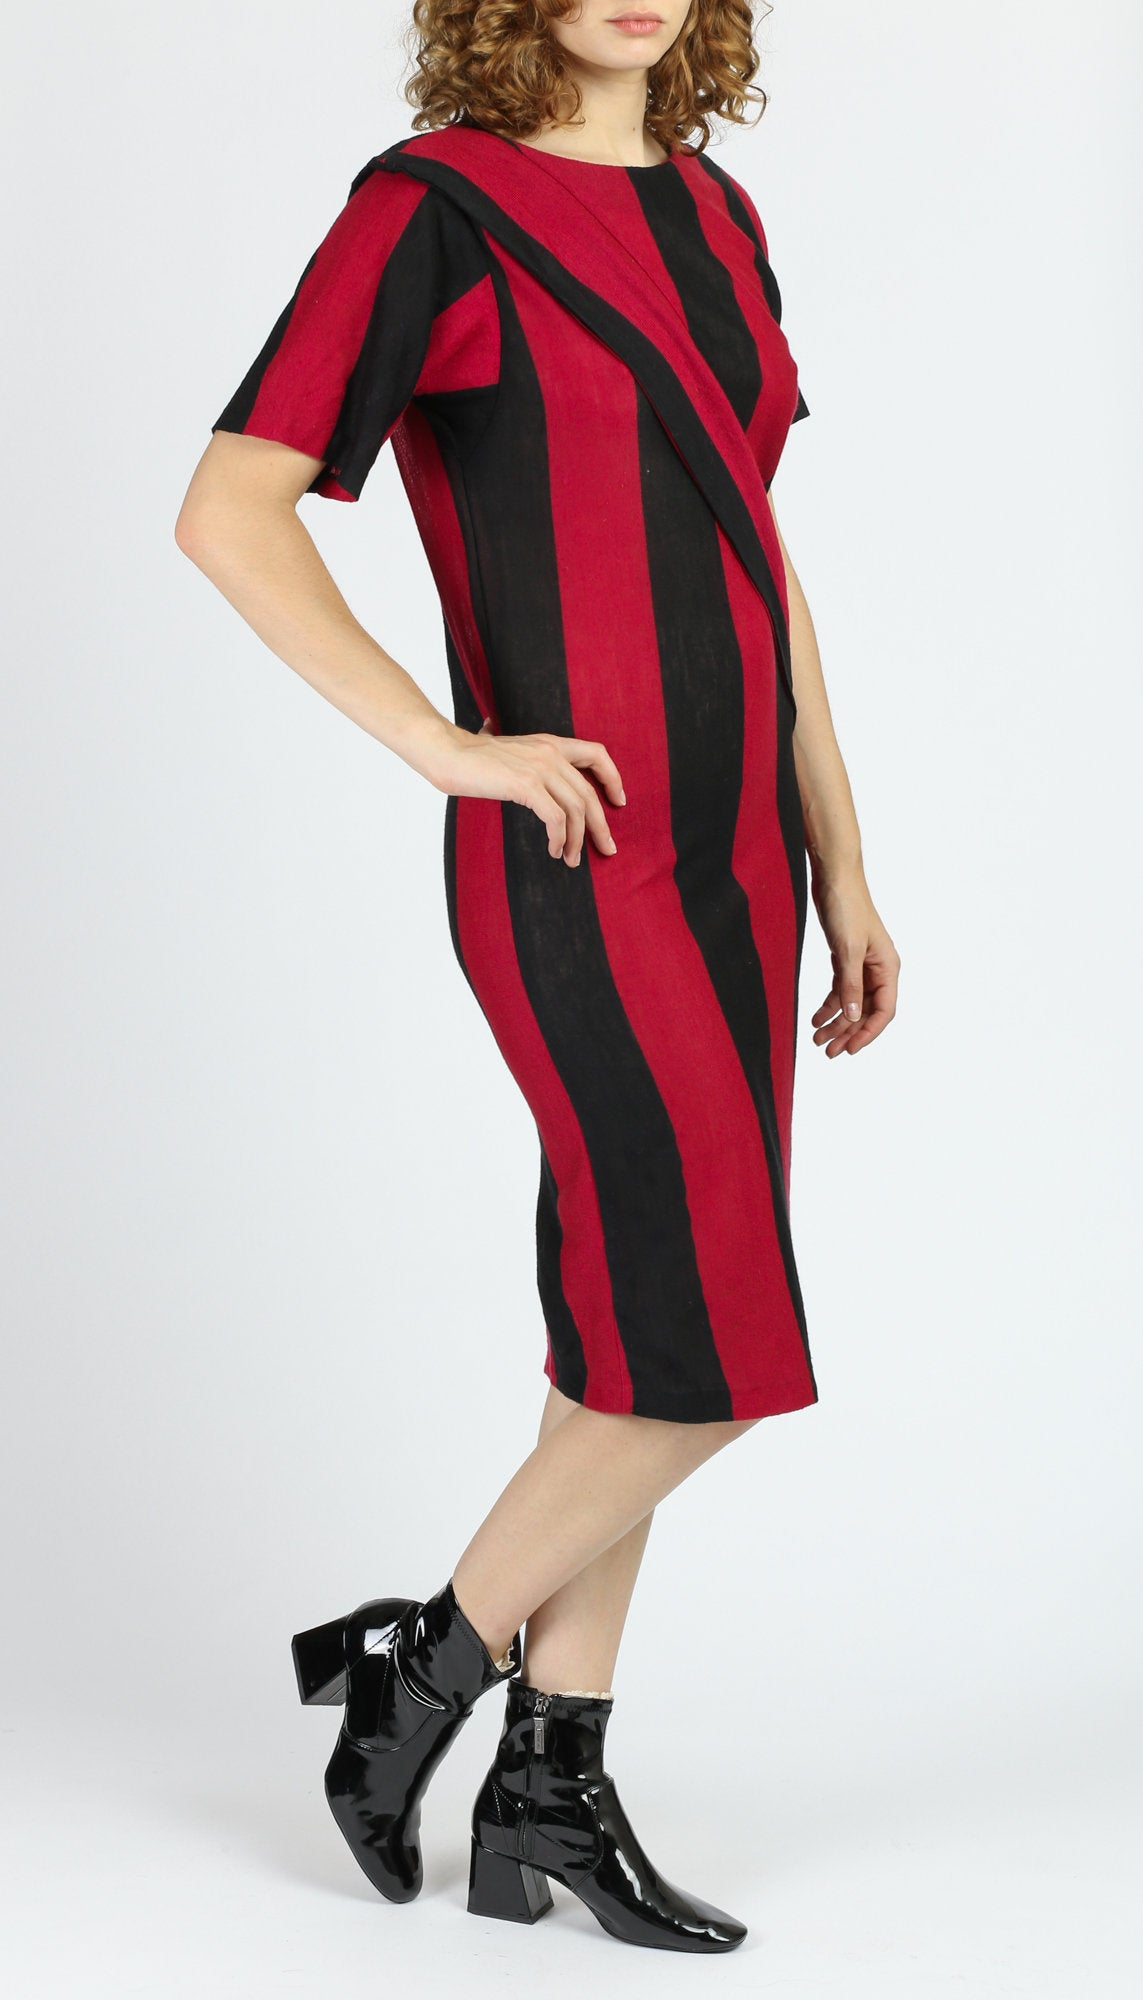 80s Red & Black Striped Side Tie Dress - Small to Medium